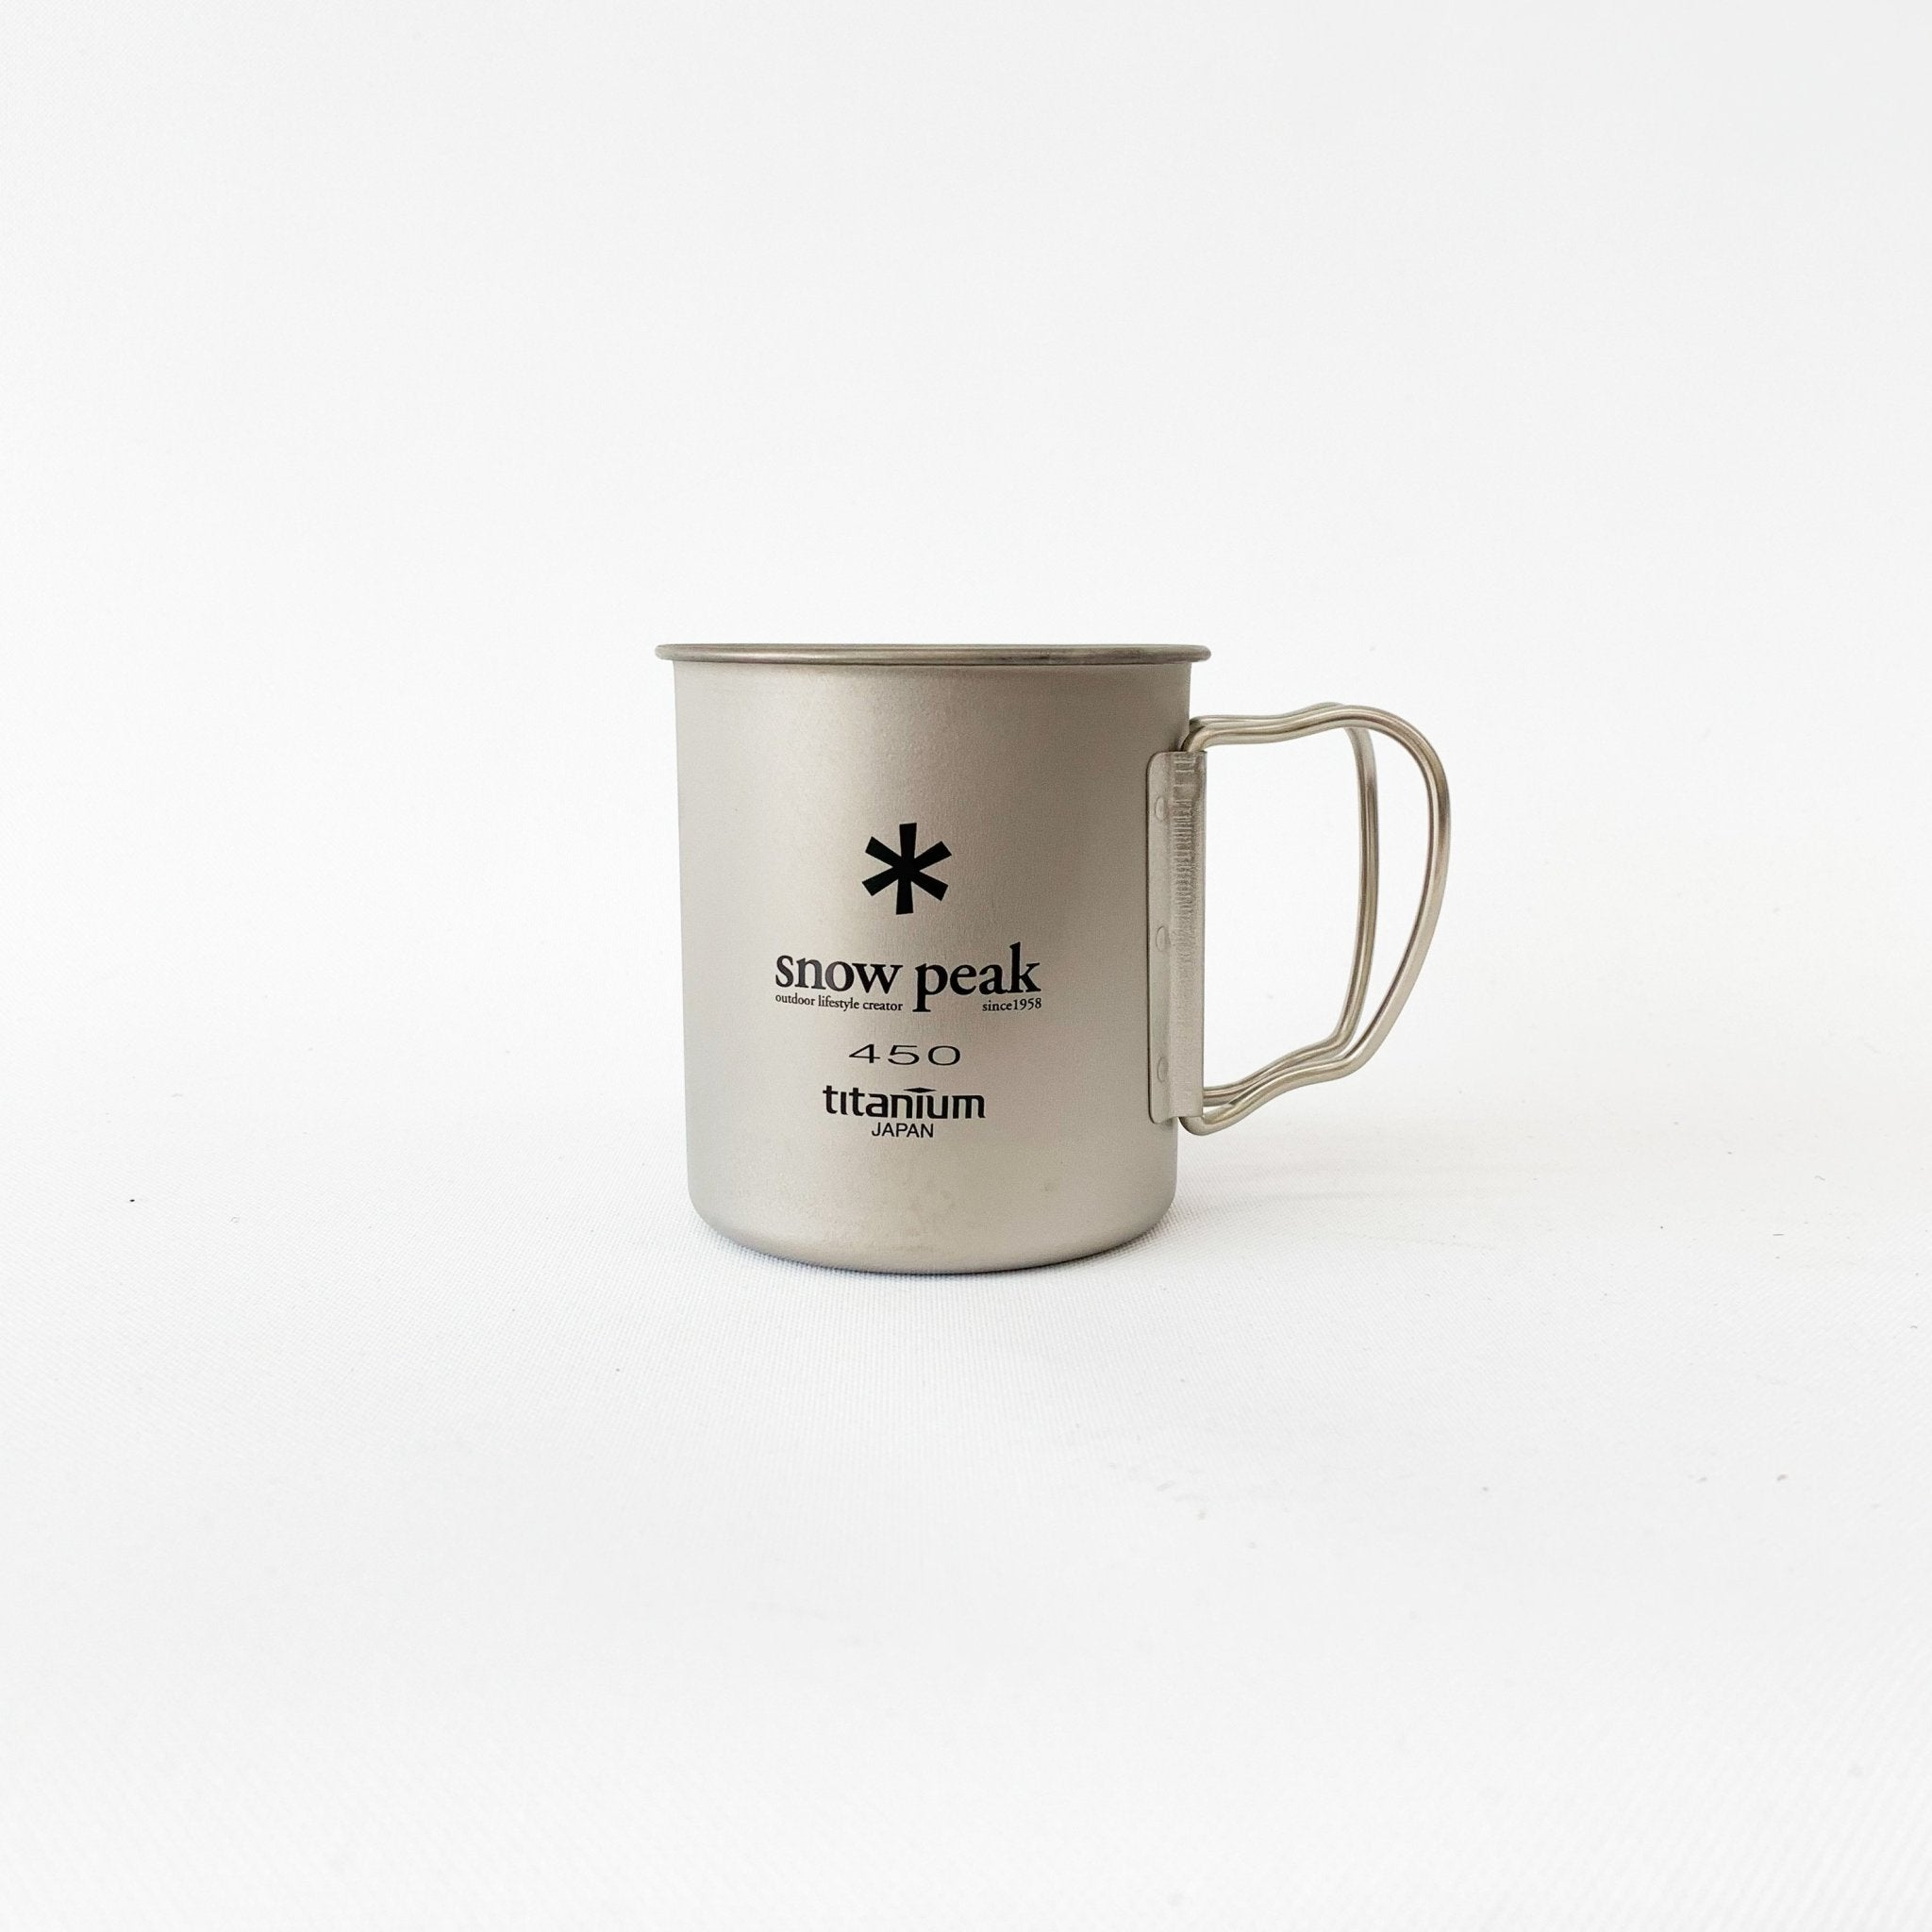 Snow Peak Titanium Single Wall Mugs - tortoise general store